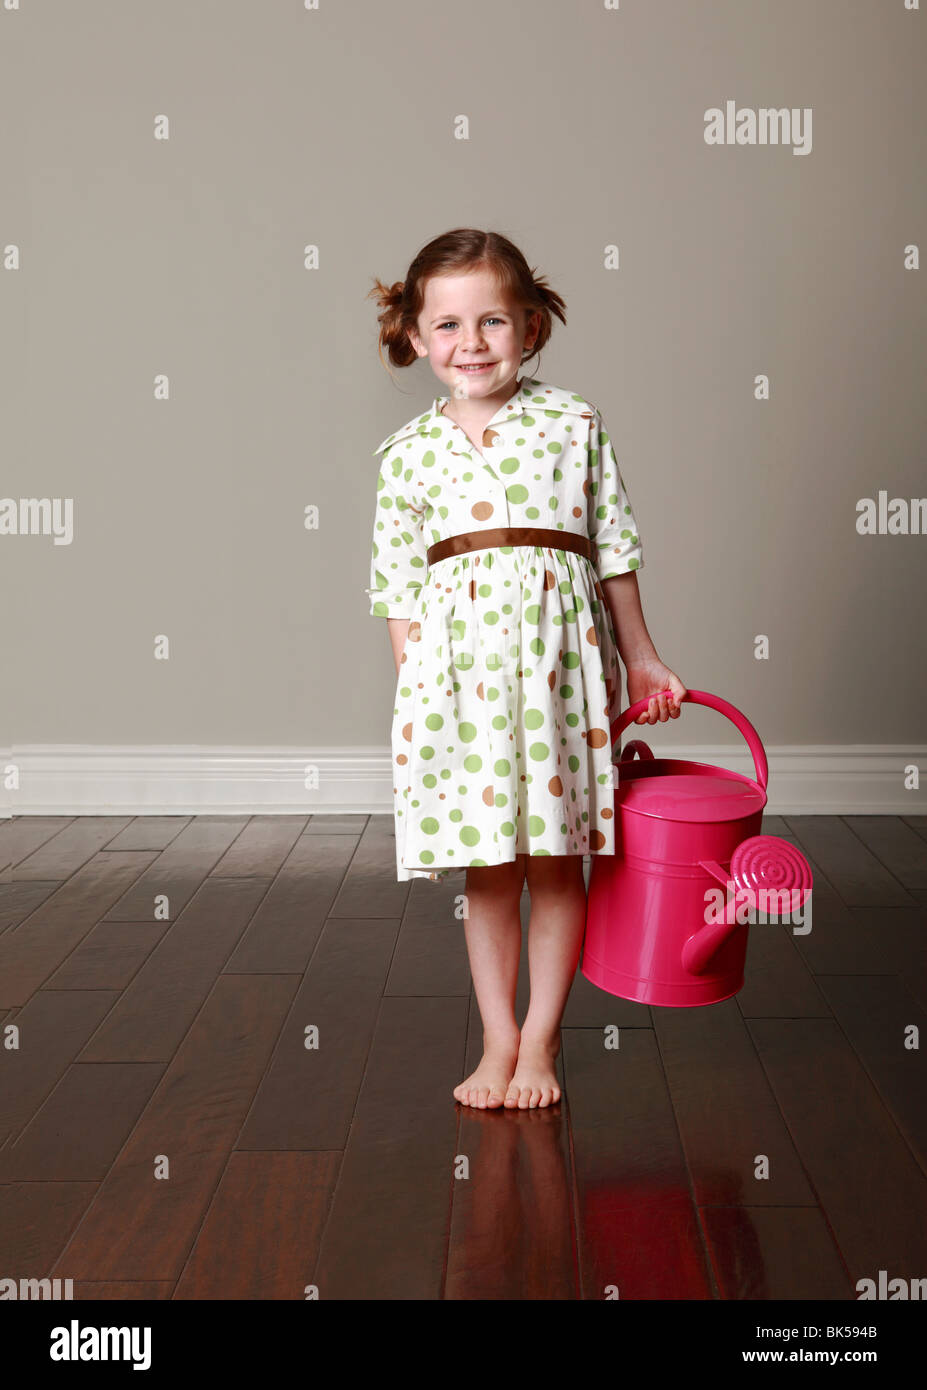 Girl in polka dot dress holding watering can - Stock Image